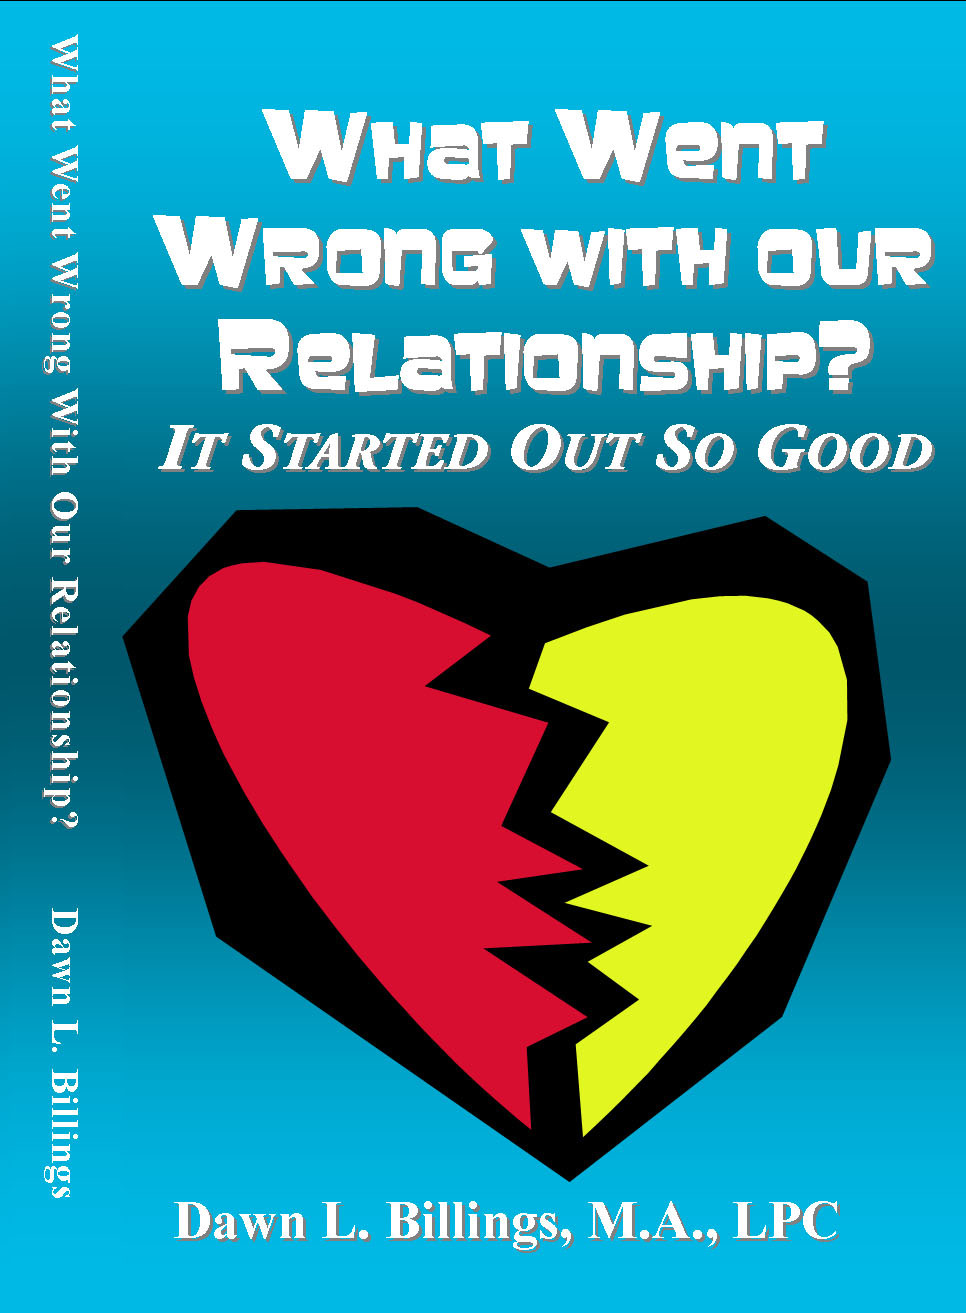 What Went Wrong Relationship book by Dawn Billings